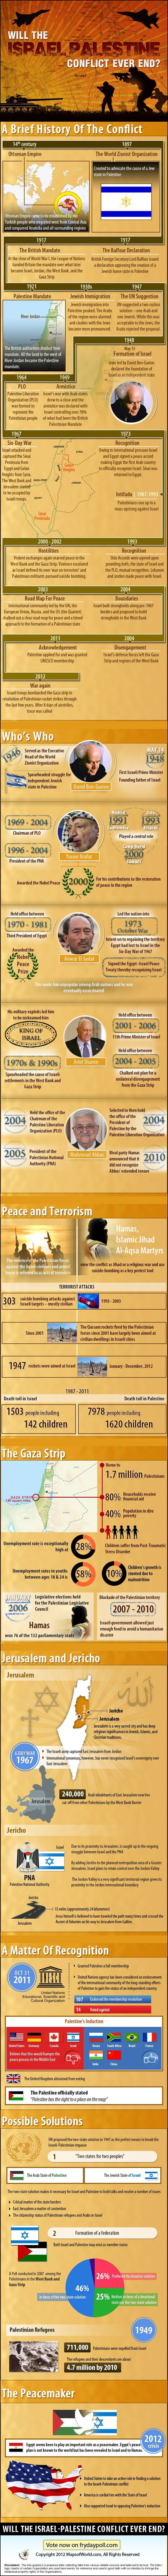 Find In-depth Review And Infographic About The Israel-Palestine Conflict. Learn about the history, timeline, important people and possible solution to this conflict.